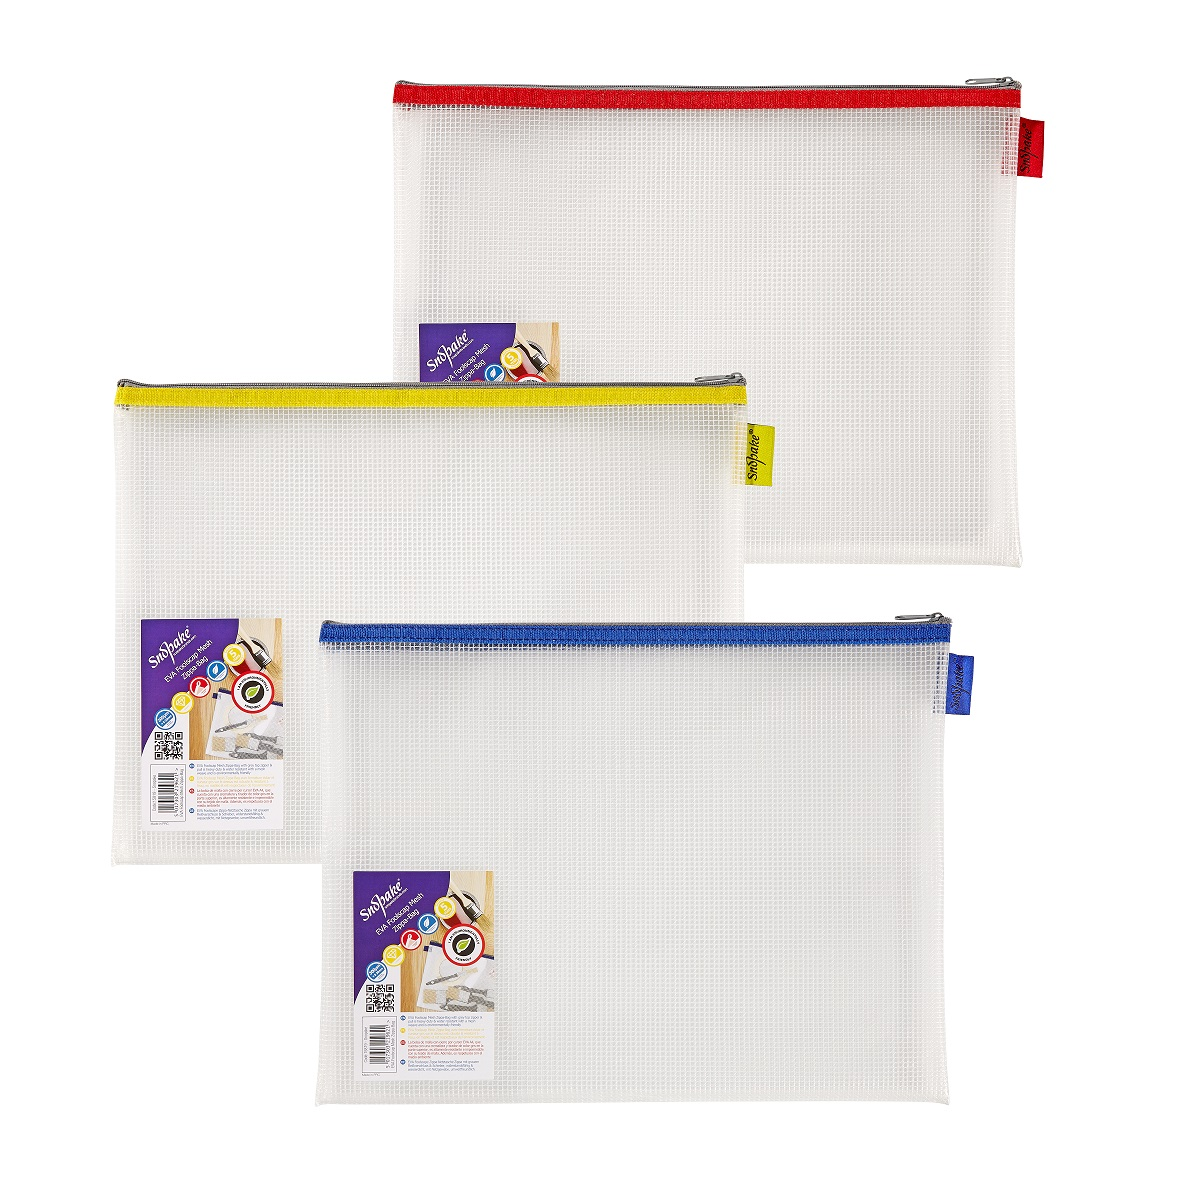 Zip Bags Snopake EVA Mesh Zippa Bag Foolscap Assorted Pack 3